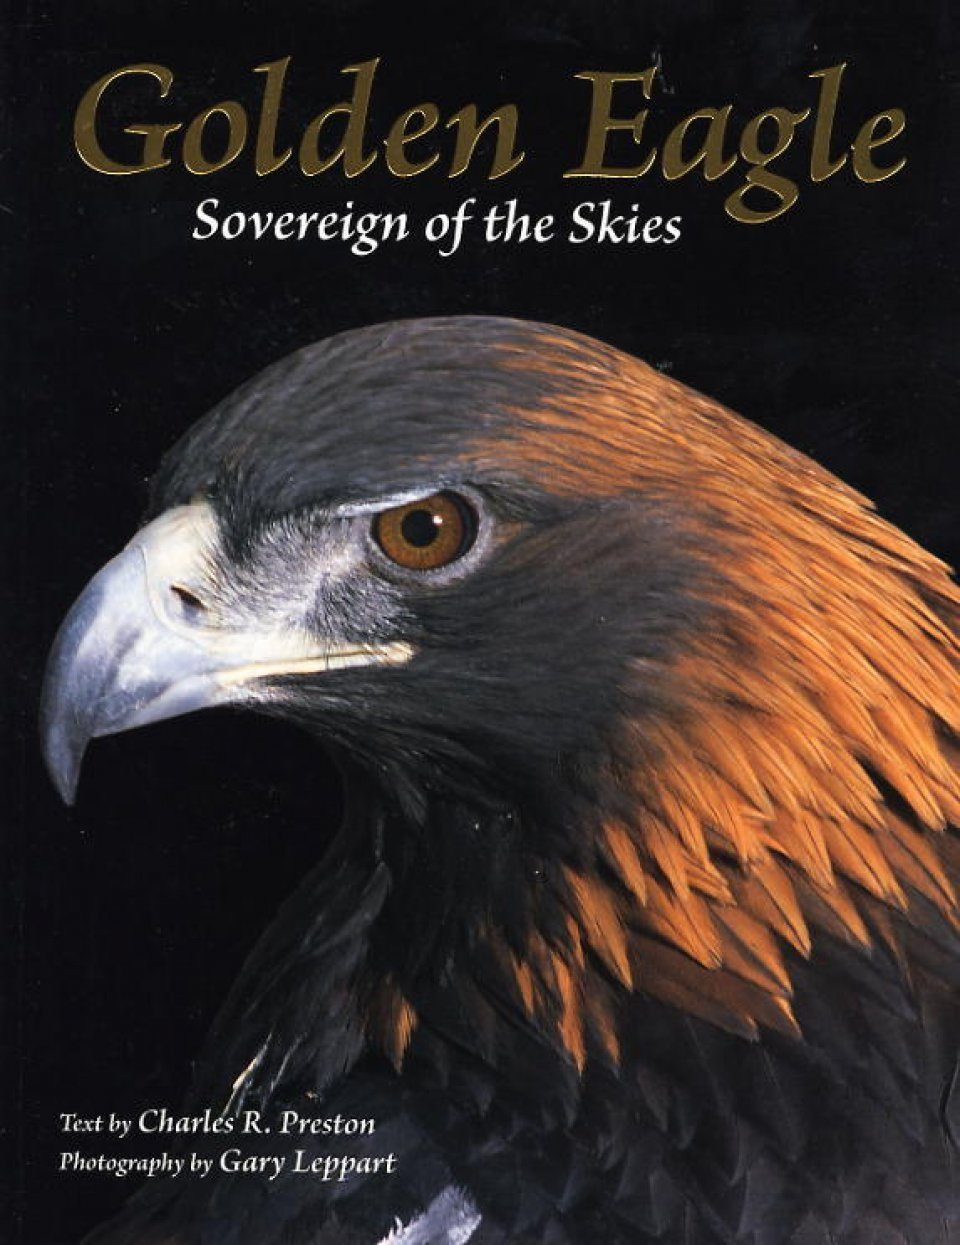 Golden Eagle: Sovereign of the Skies